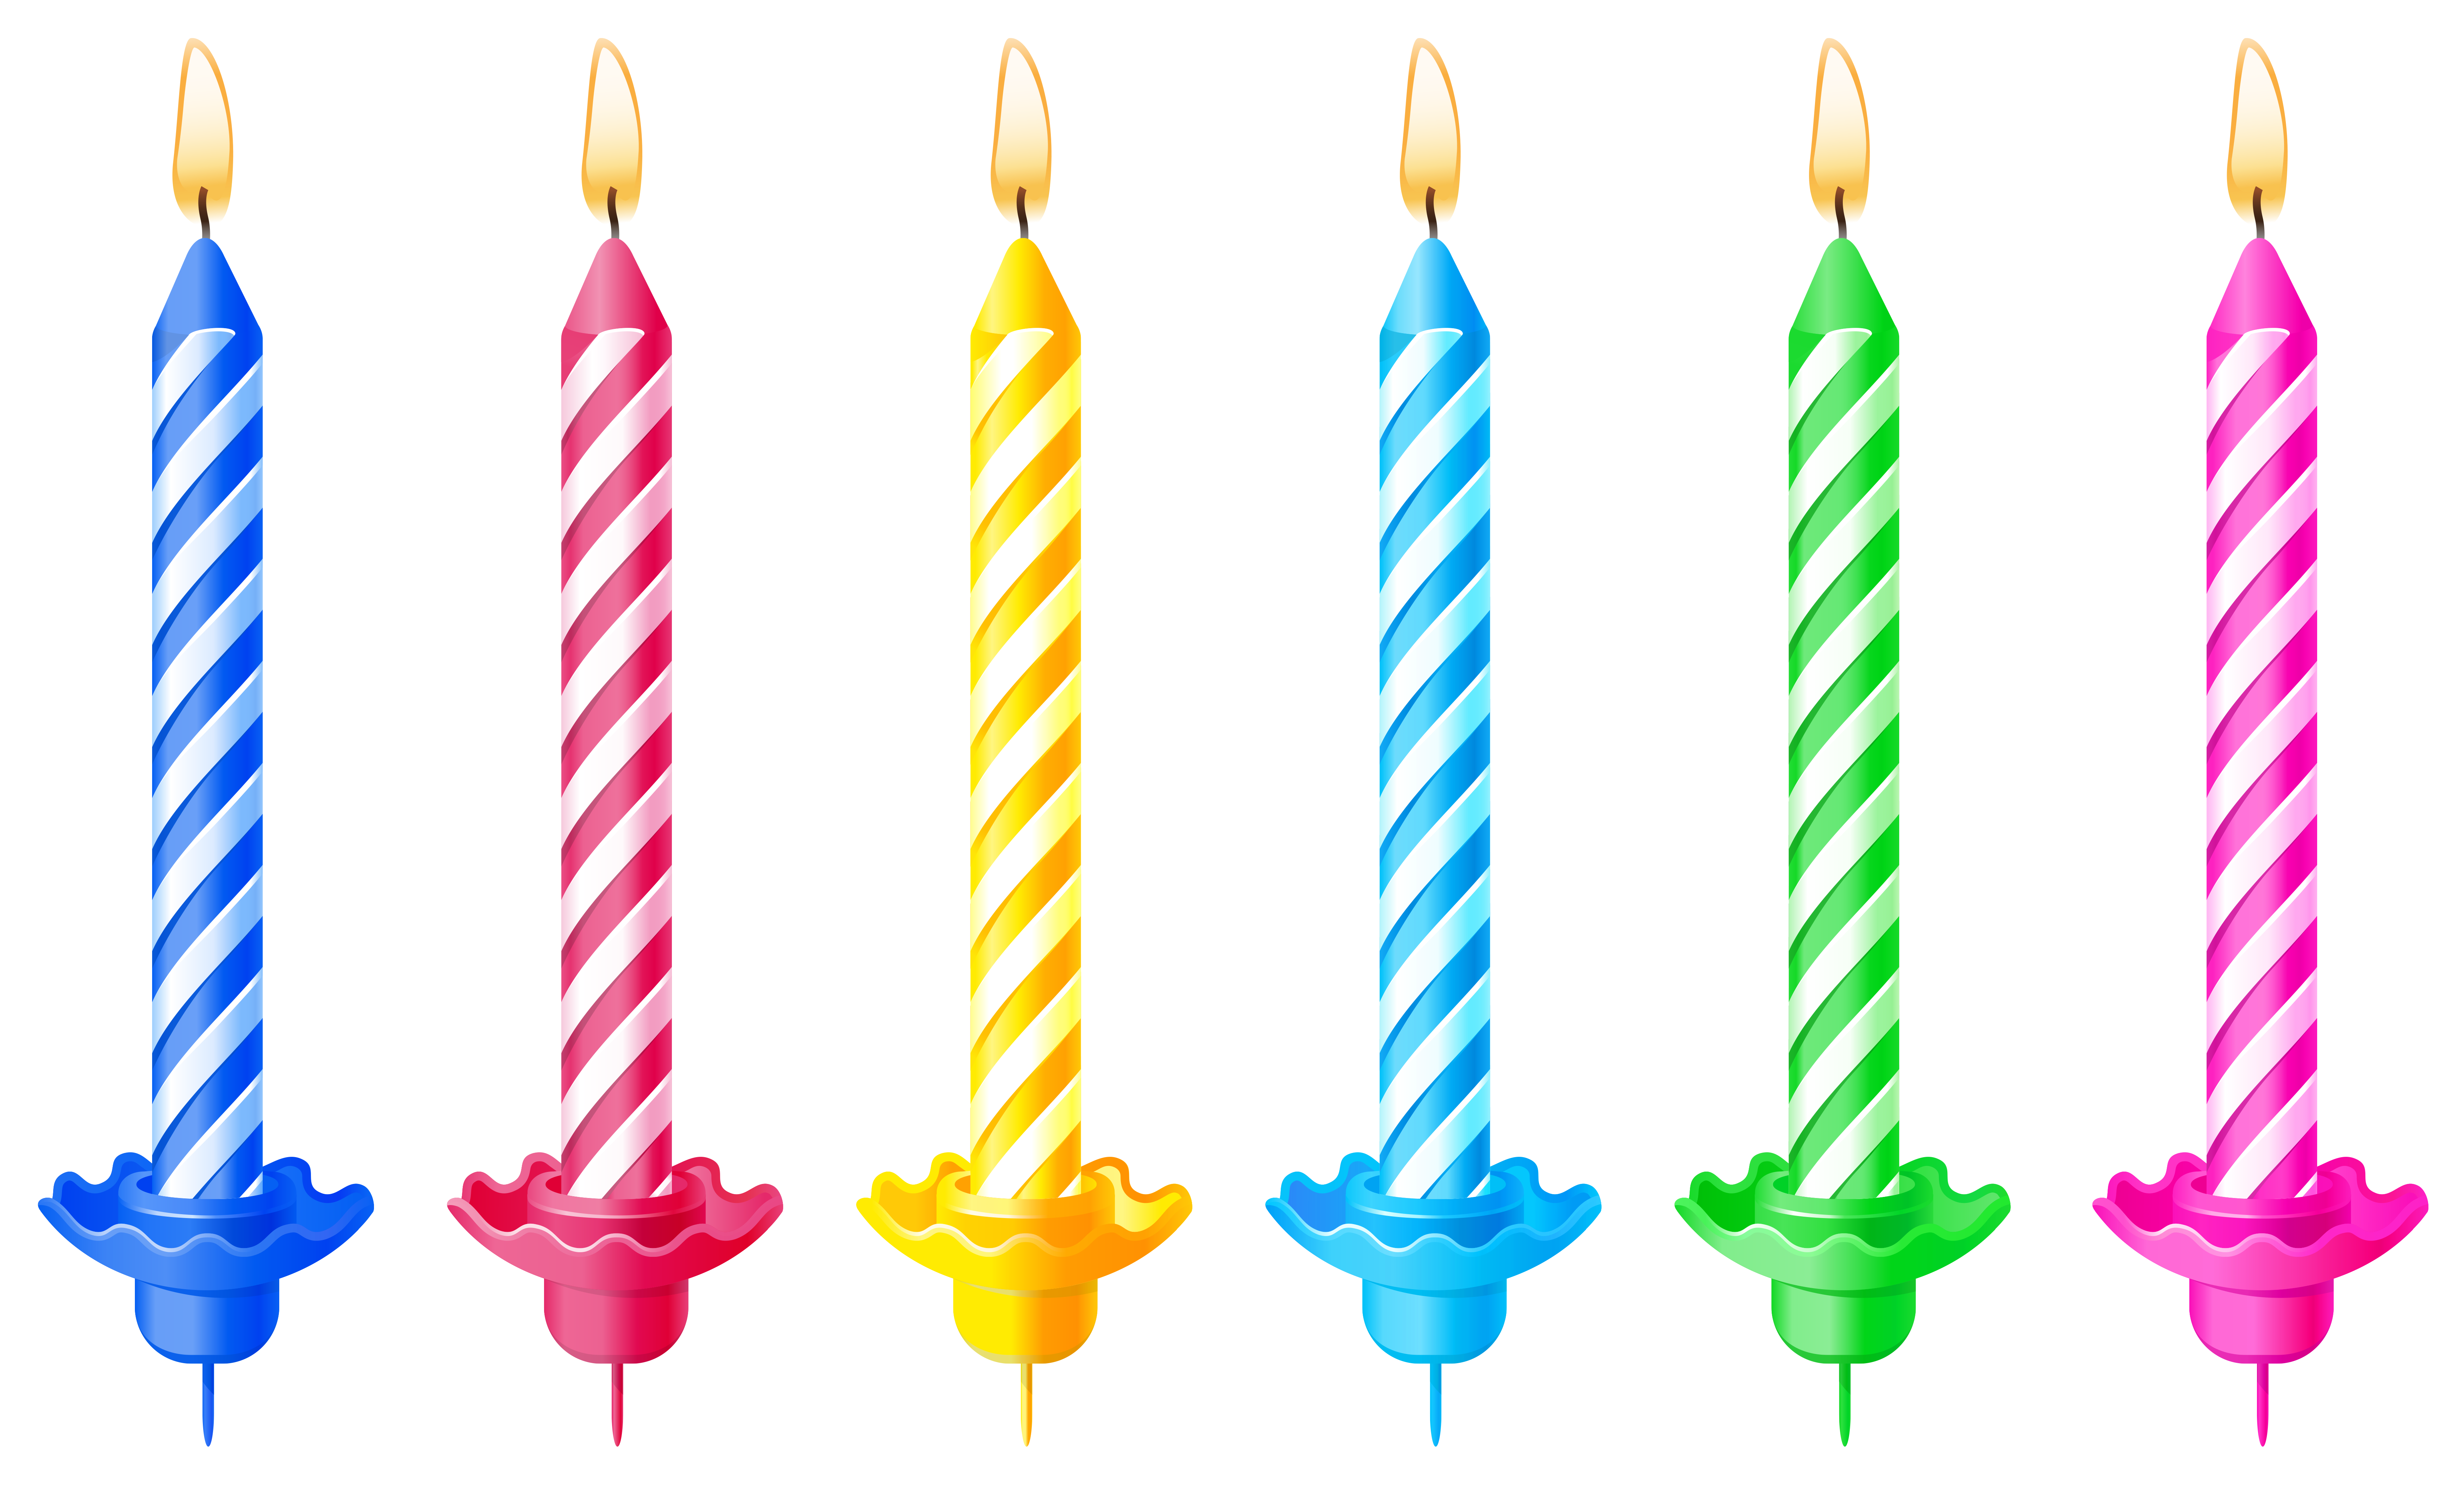 Birthday png picture gallery. Candles clipart transparent background